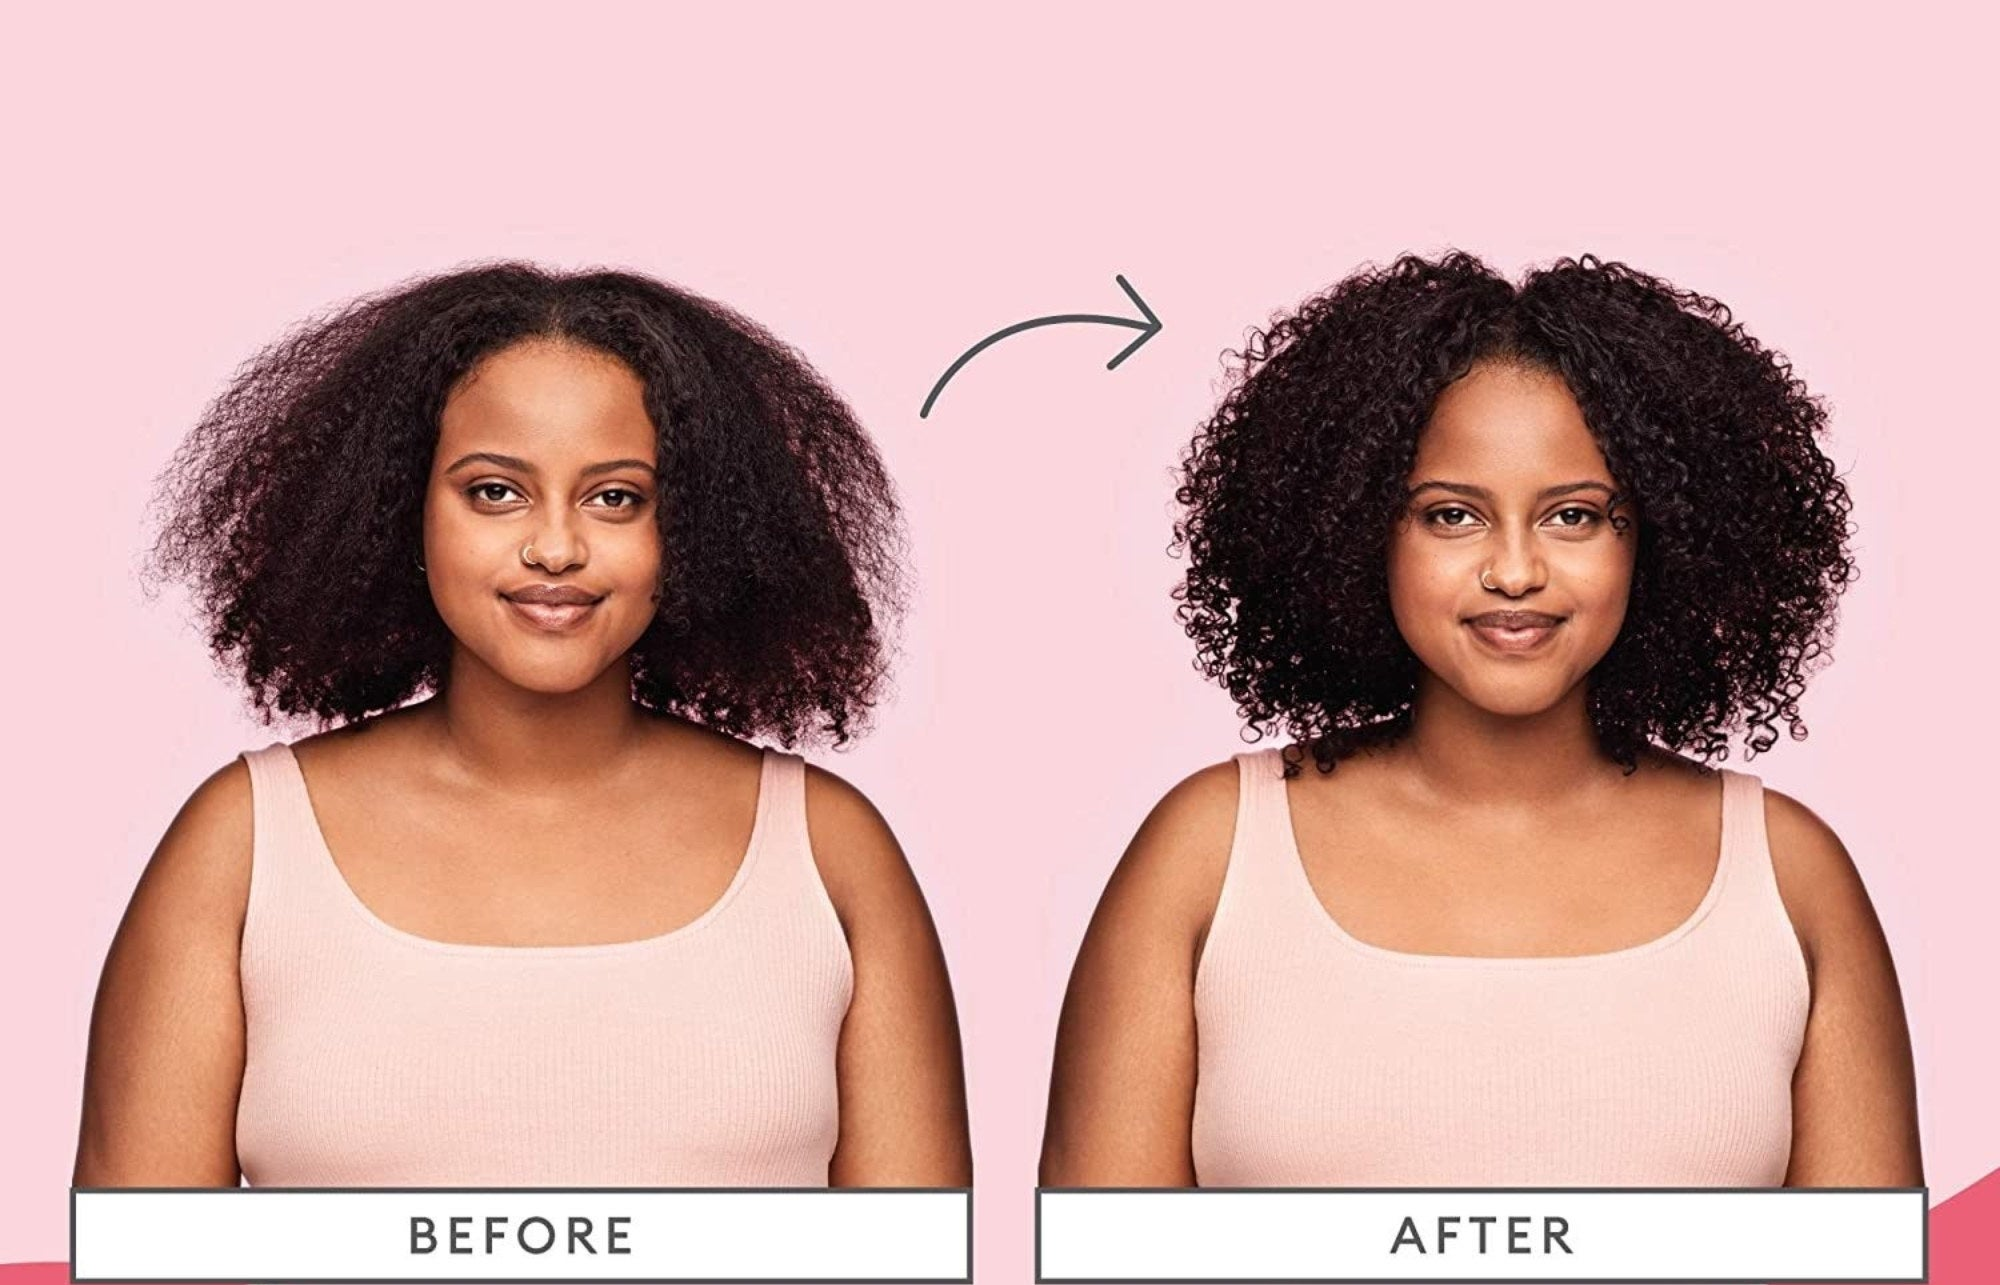 Before and after photos showing a model with natural curly hair looking dry and looking moisturized after using the mask